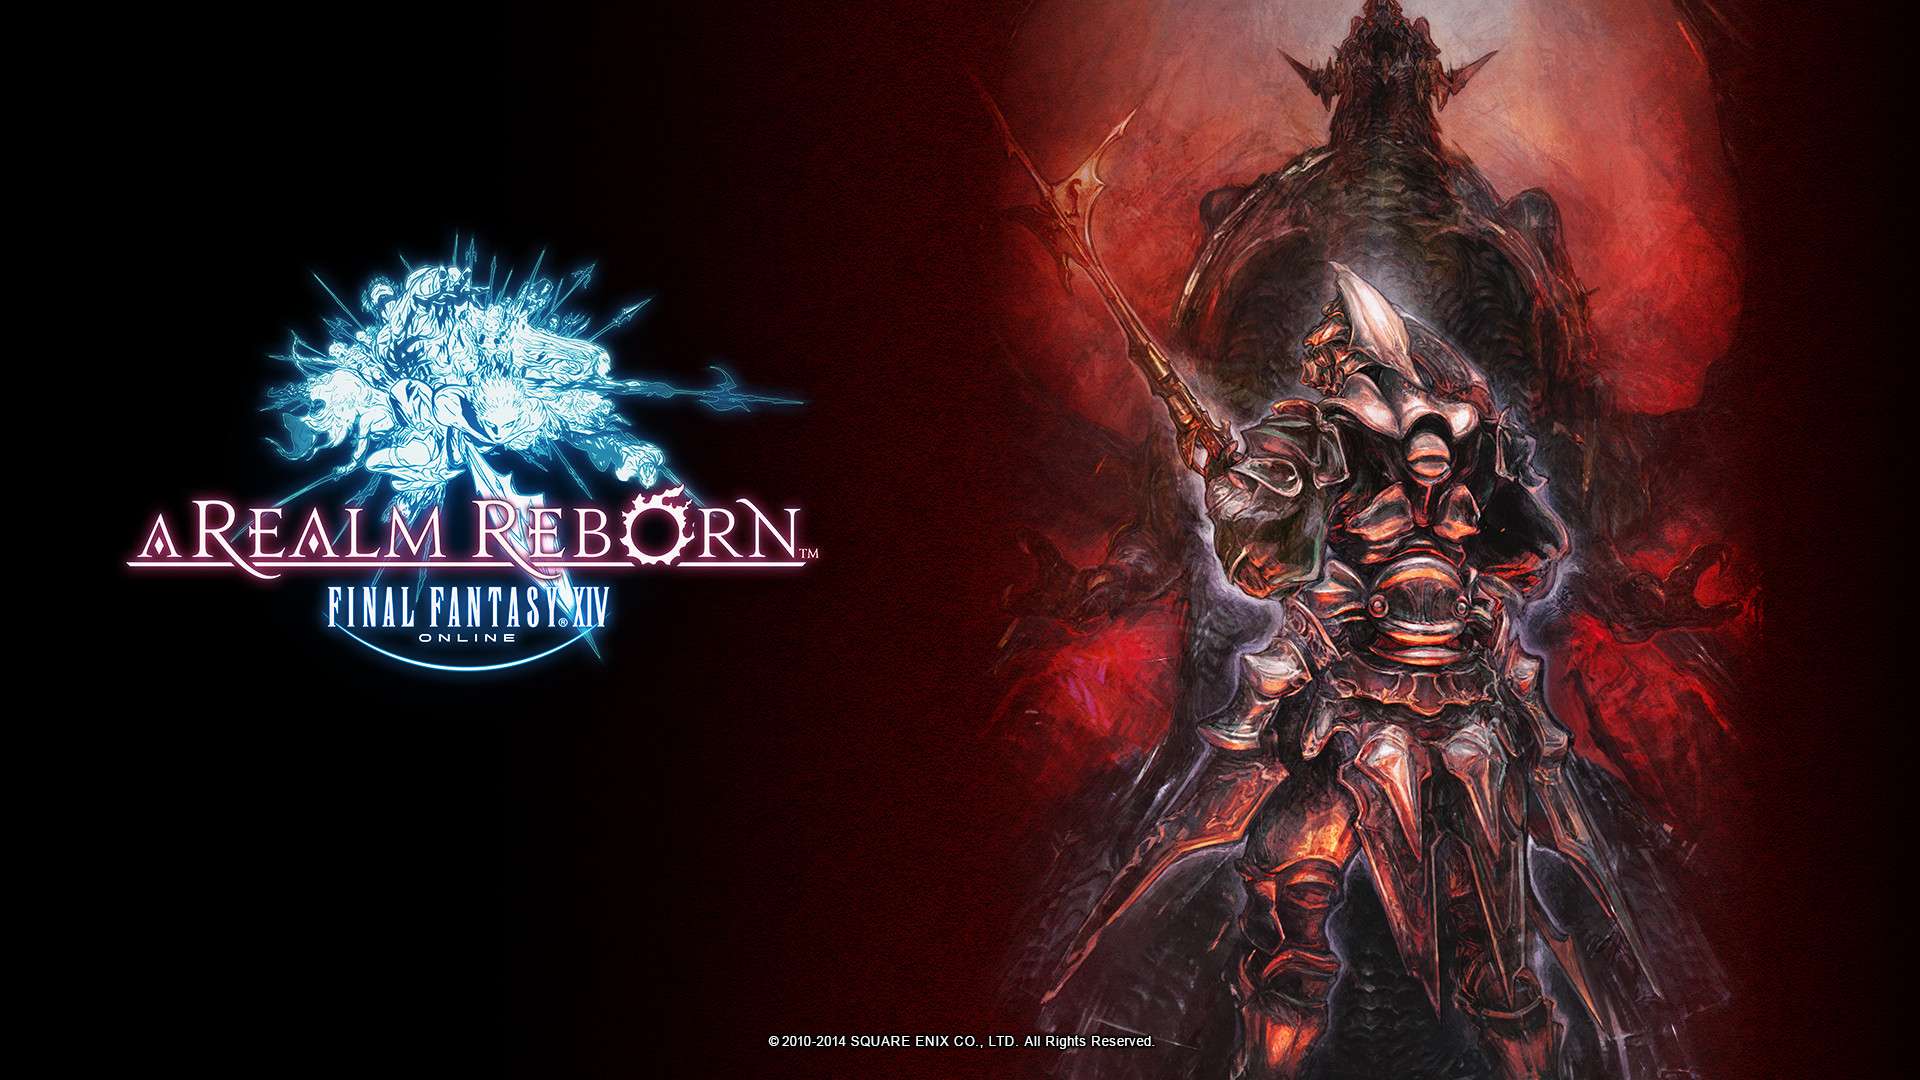 Square Enix has released new amazing Final Fantasy XIV: A Realm Reborn  wallpapers! This time they are featuring Gaius and Bahamut, who are main  villains in …